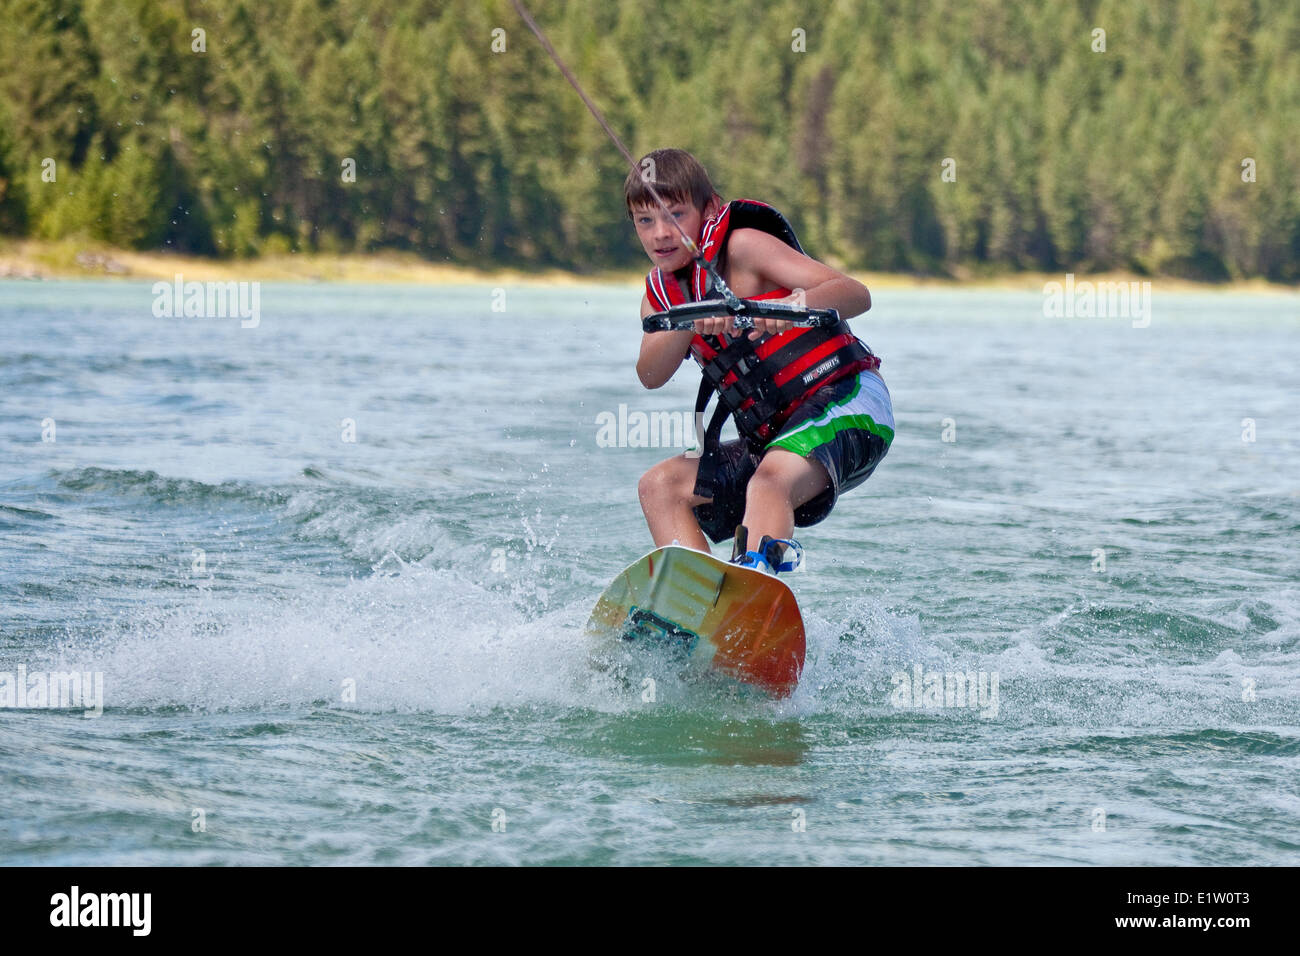 Young boy wakeboarding on Lake Koocanusa, East Kootenays, BC, Canada - Stock Image